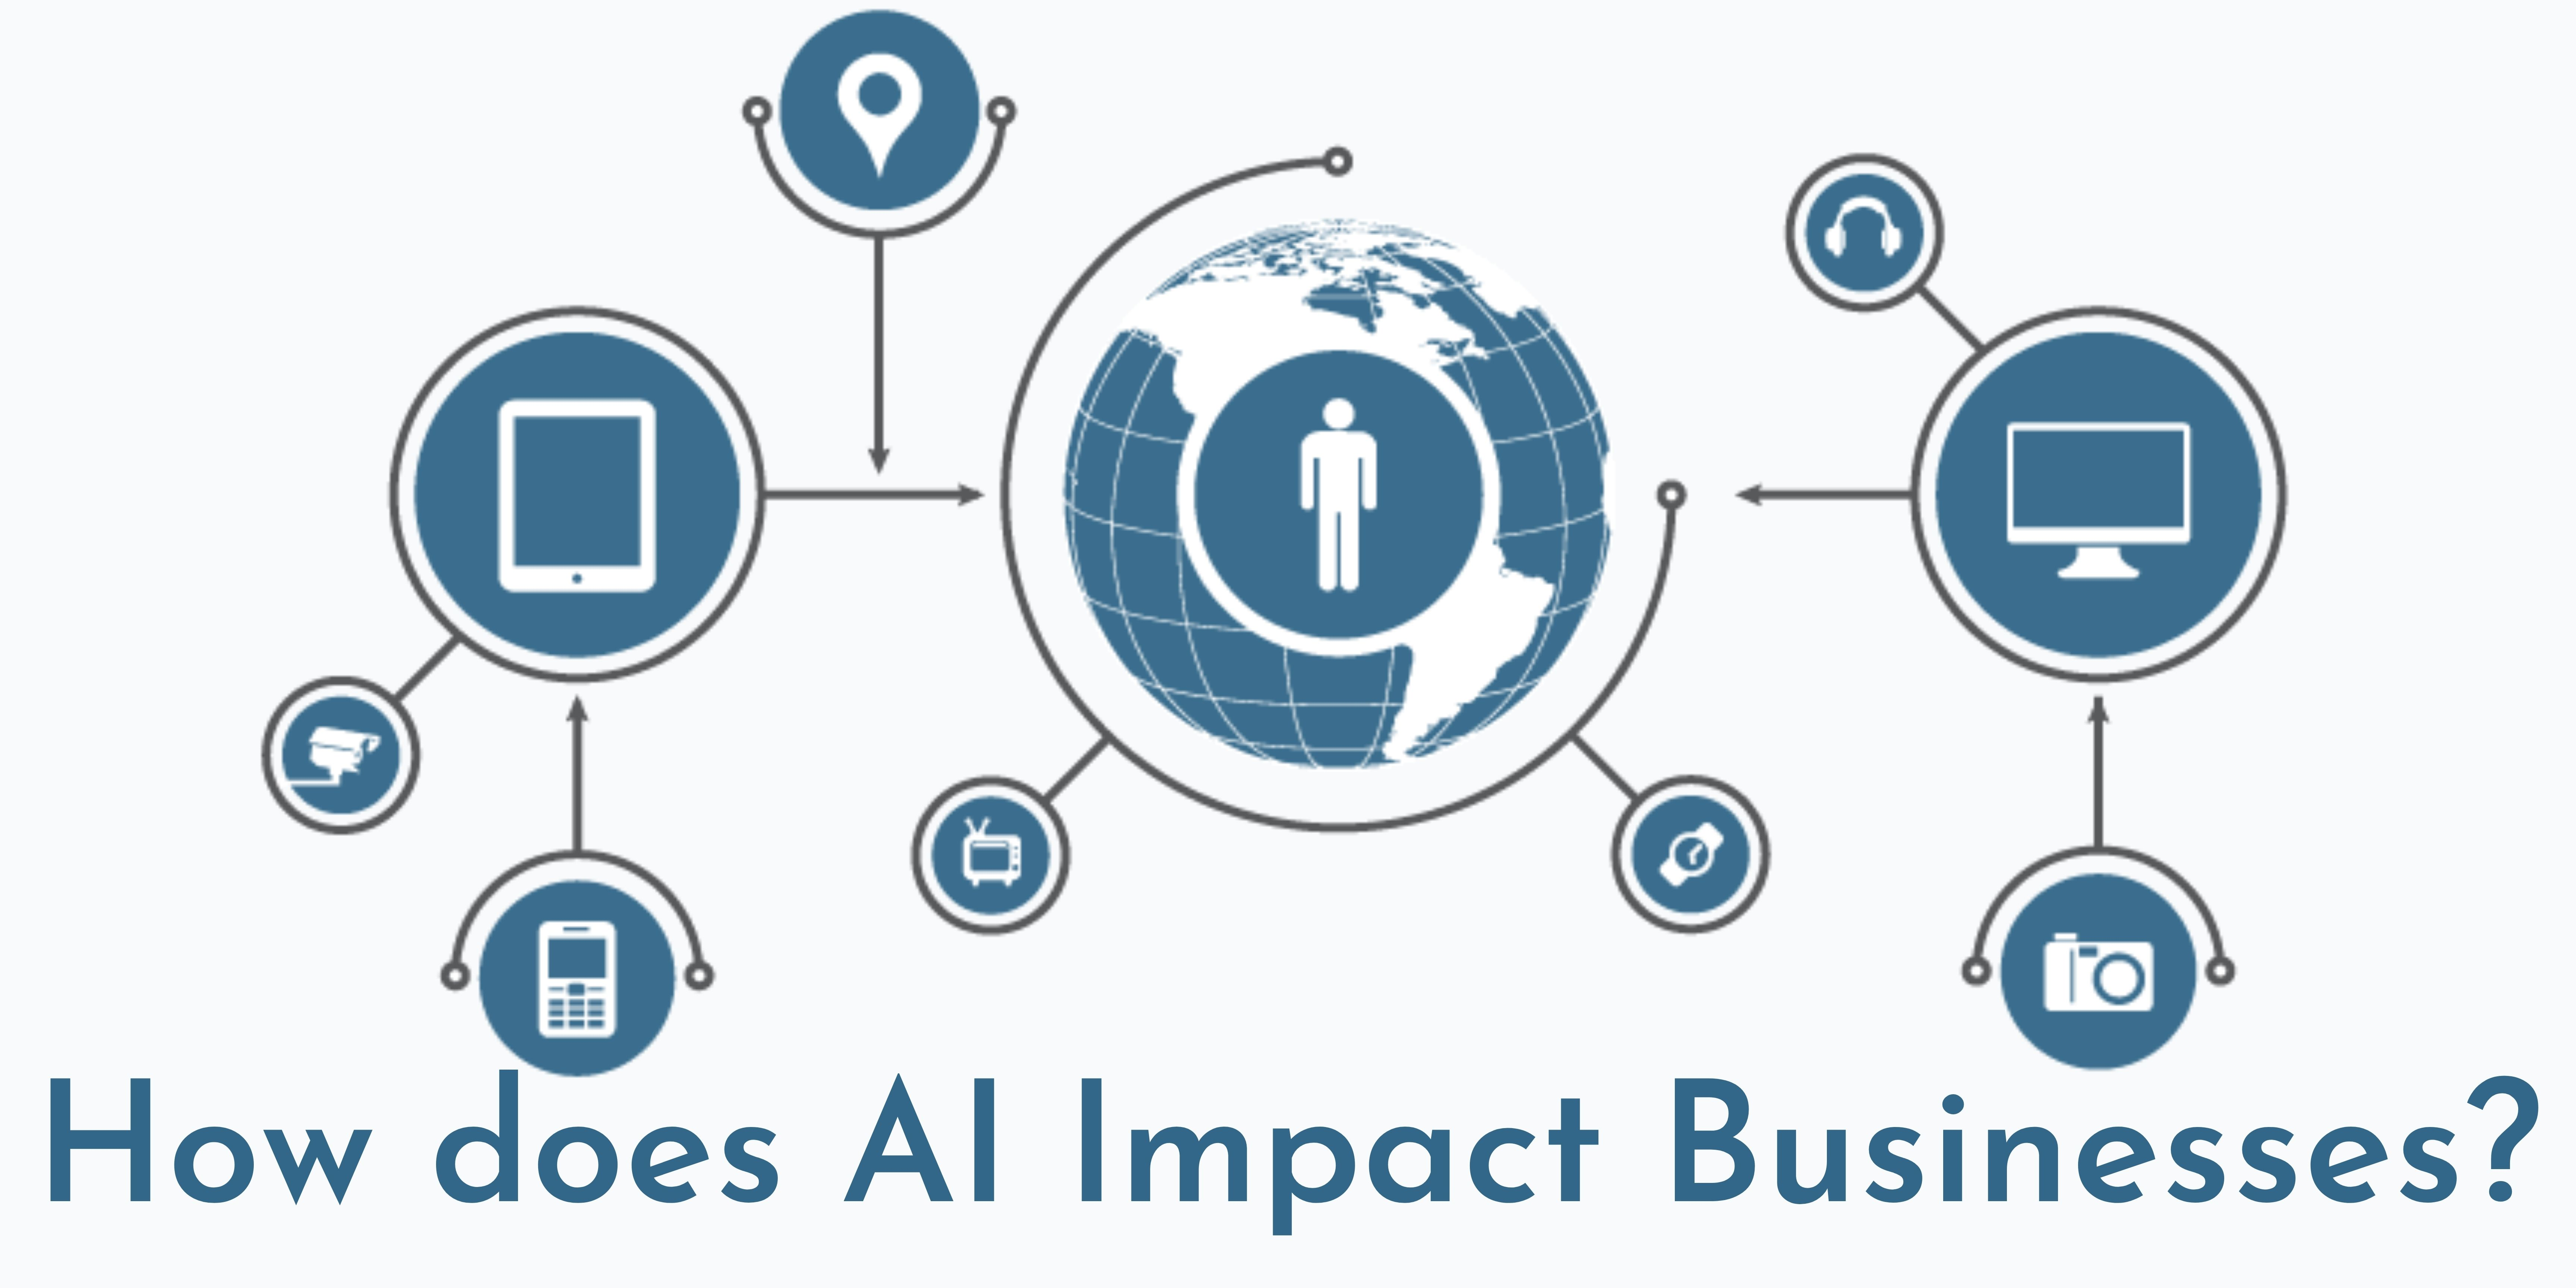 AI in business   Banner showing how different economic sectors are interconnected through AI features